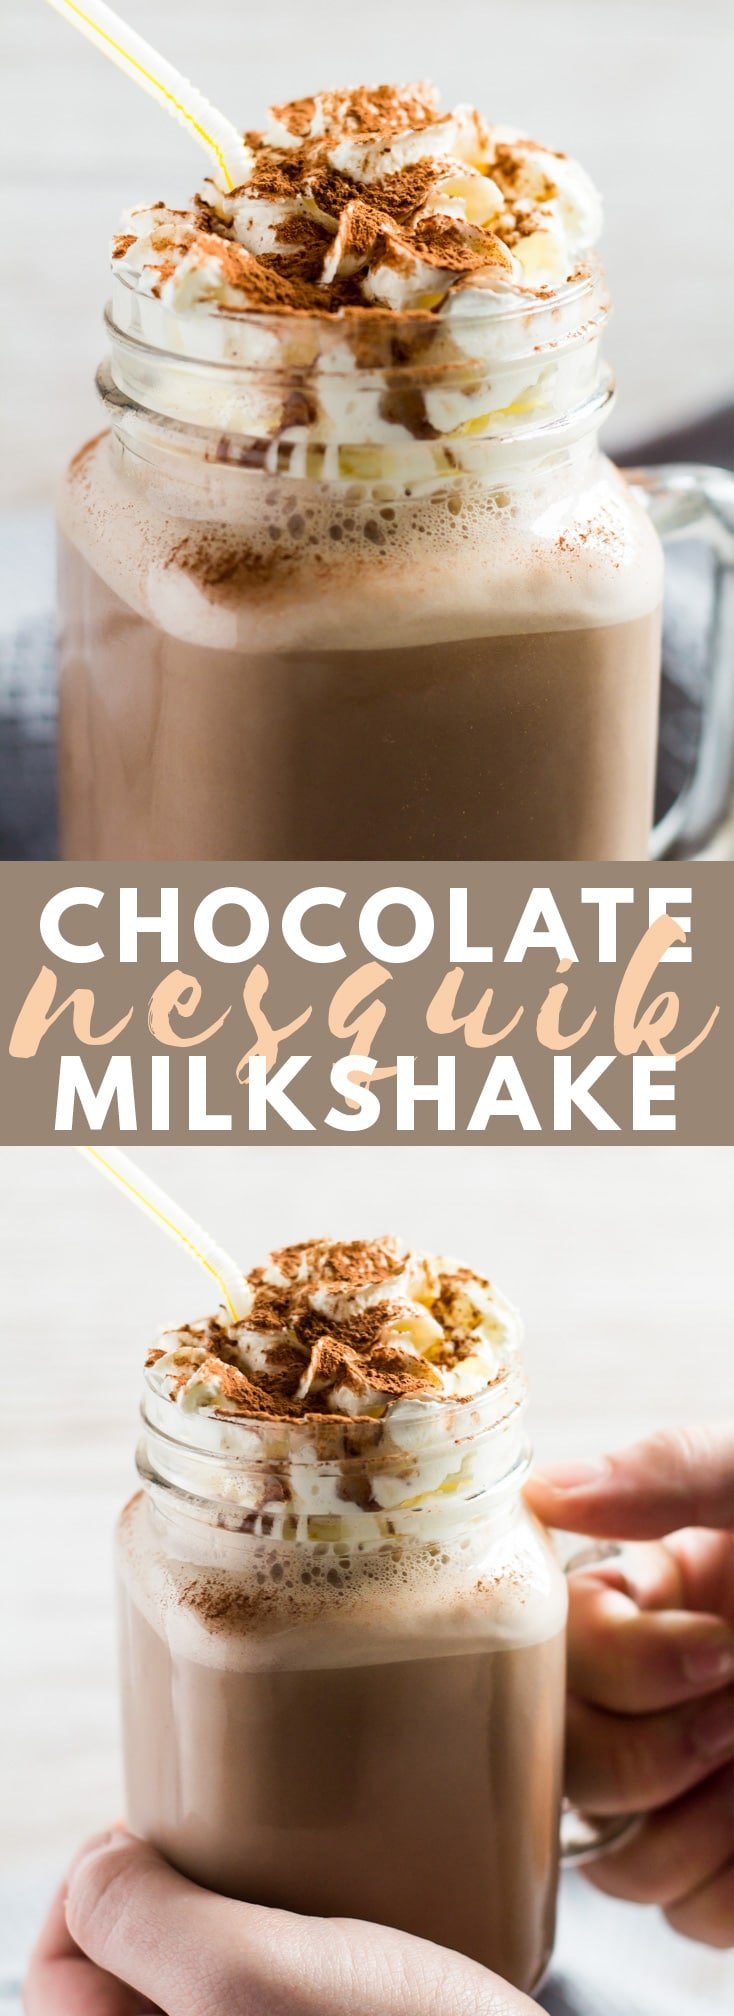 Chocolate Nesquik Milkshake - Deliciously thick and creamy milkshake made from vanilla ice cream and chocolate Nesquik powder. Top with whipped cream for a totally indulgent drink!